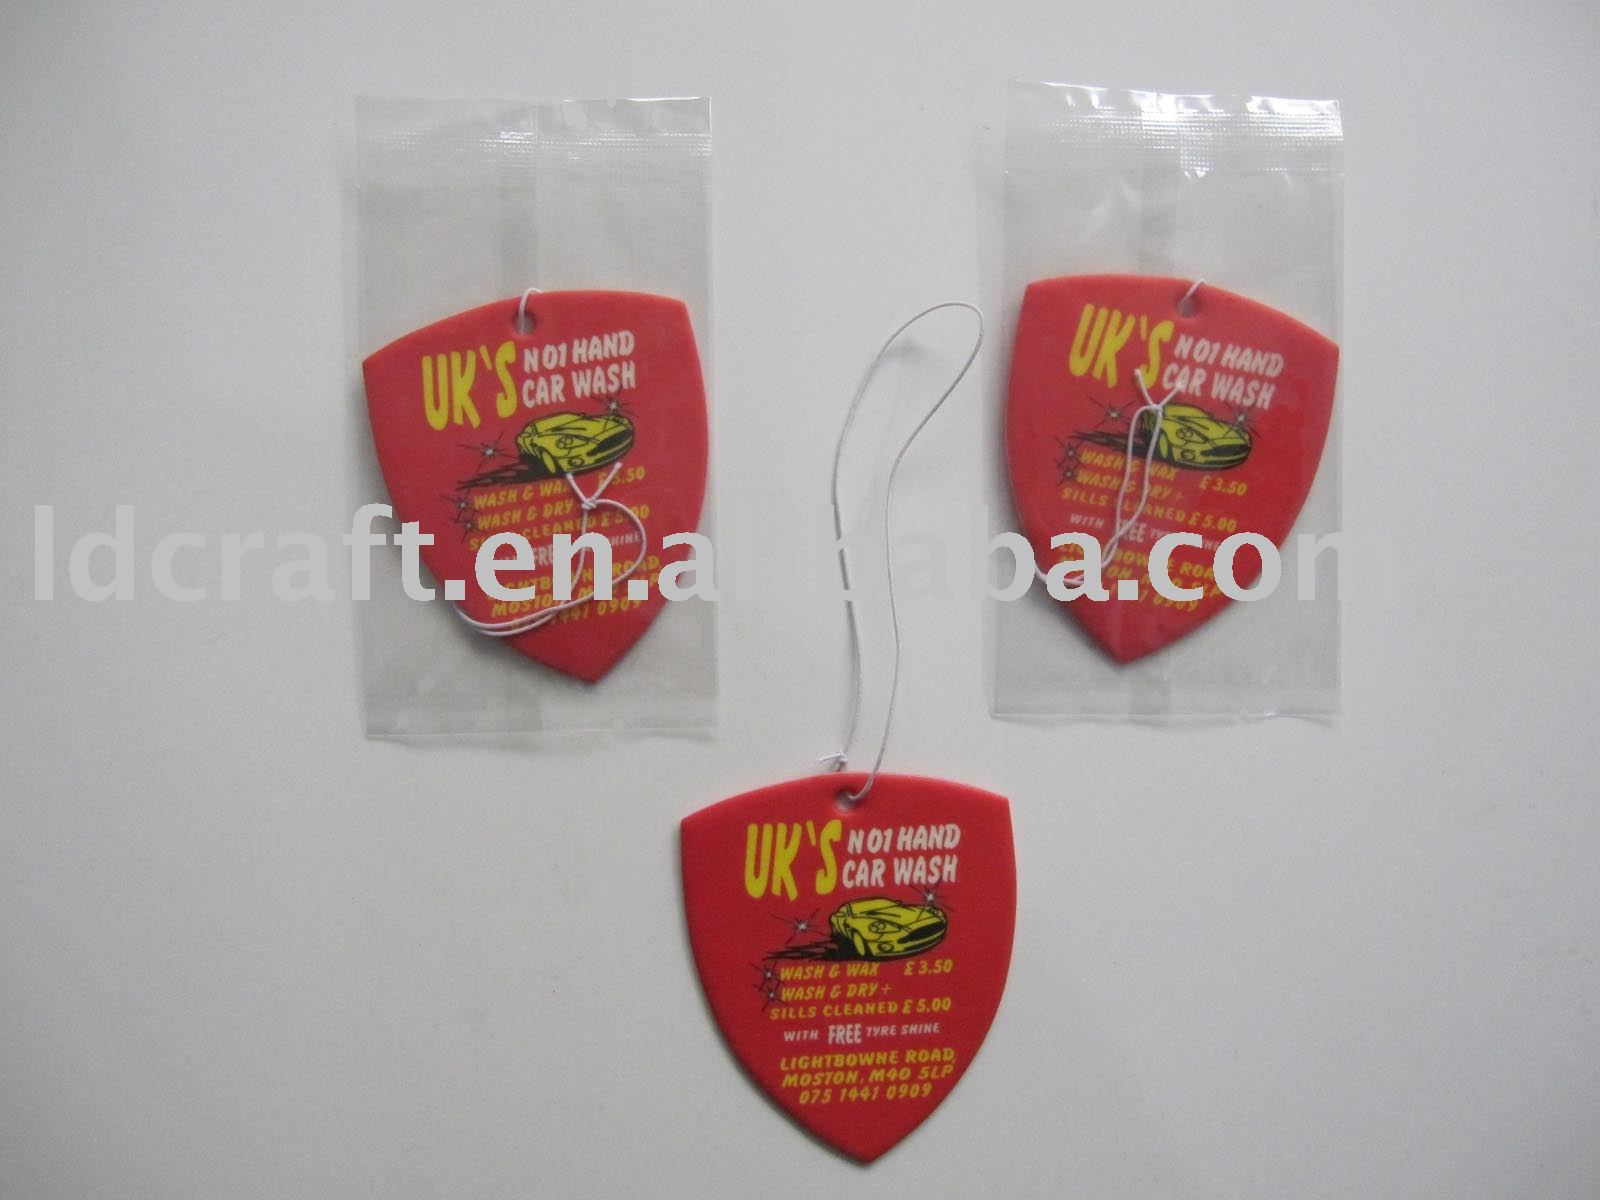 football club souvenir name brand custom air freshener for cars